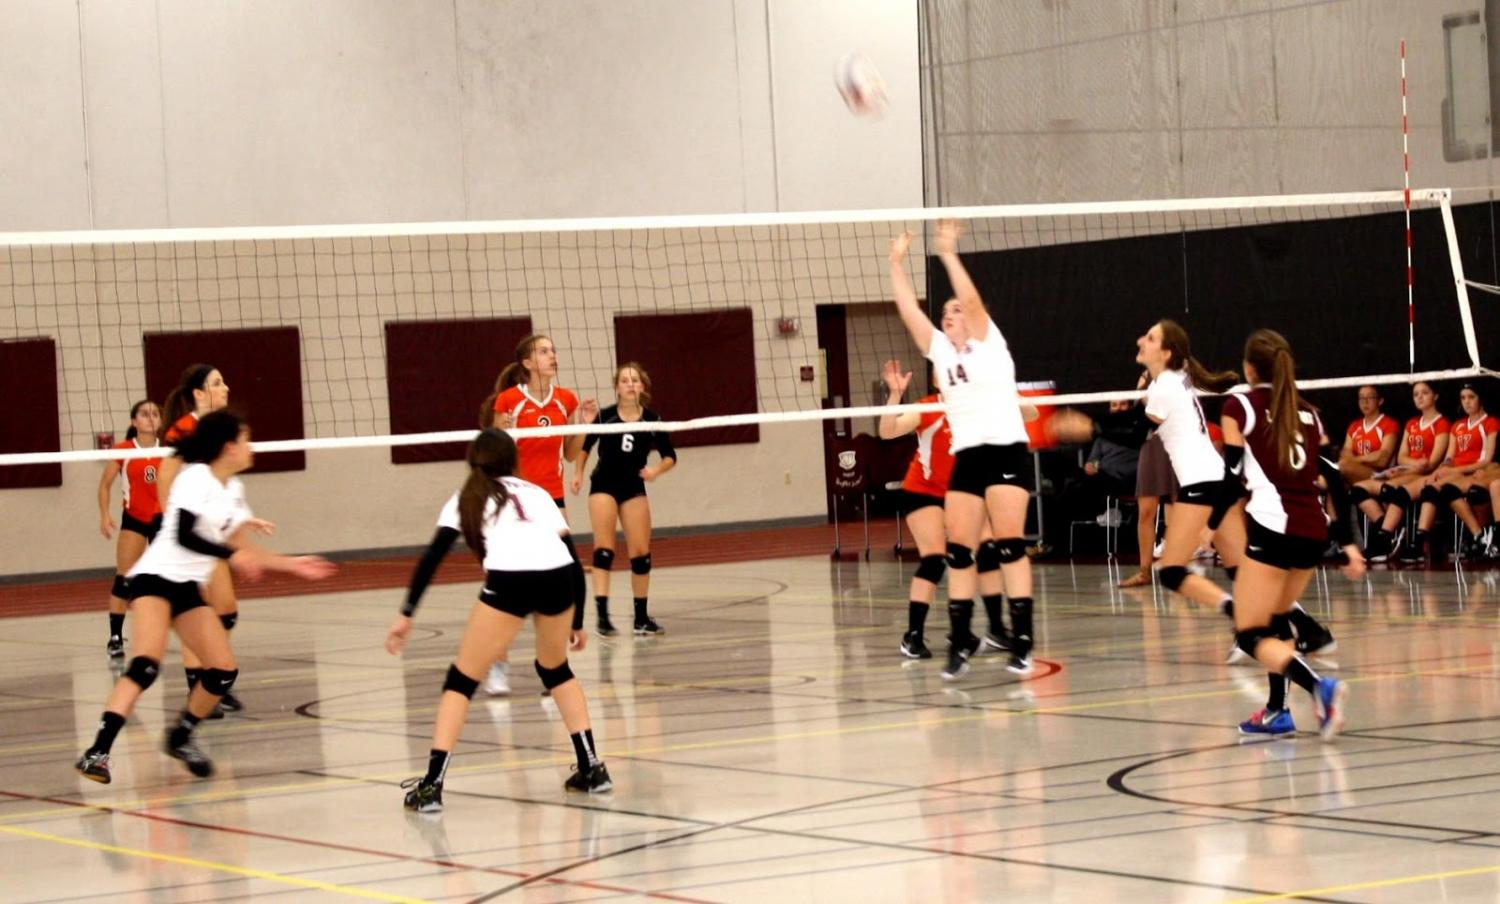 Natalie Spengler sets a volleyball to one of her hitters.